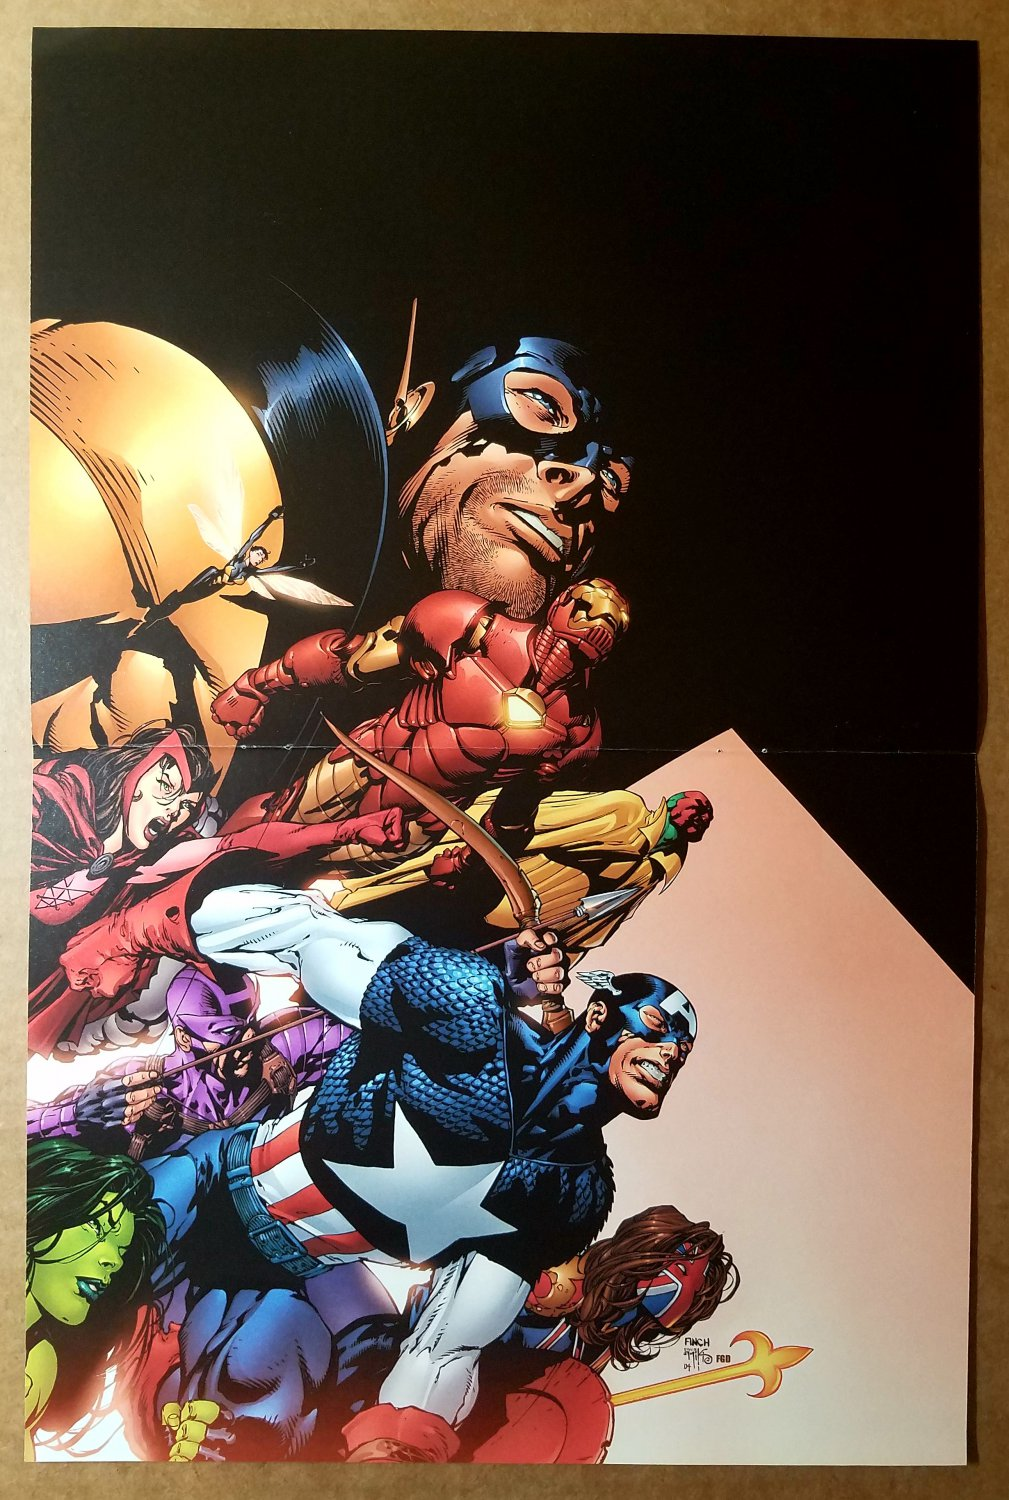 Avengers Captain America Hawkeye Iron Man Vision Marvel Poster by David Finch